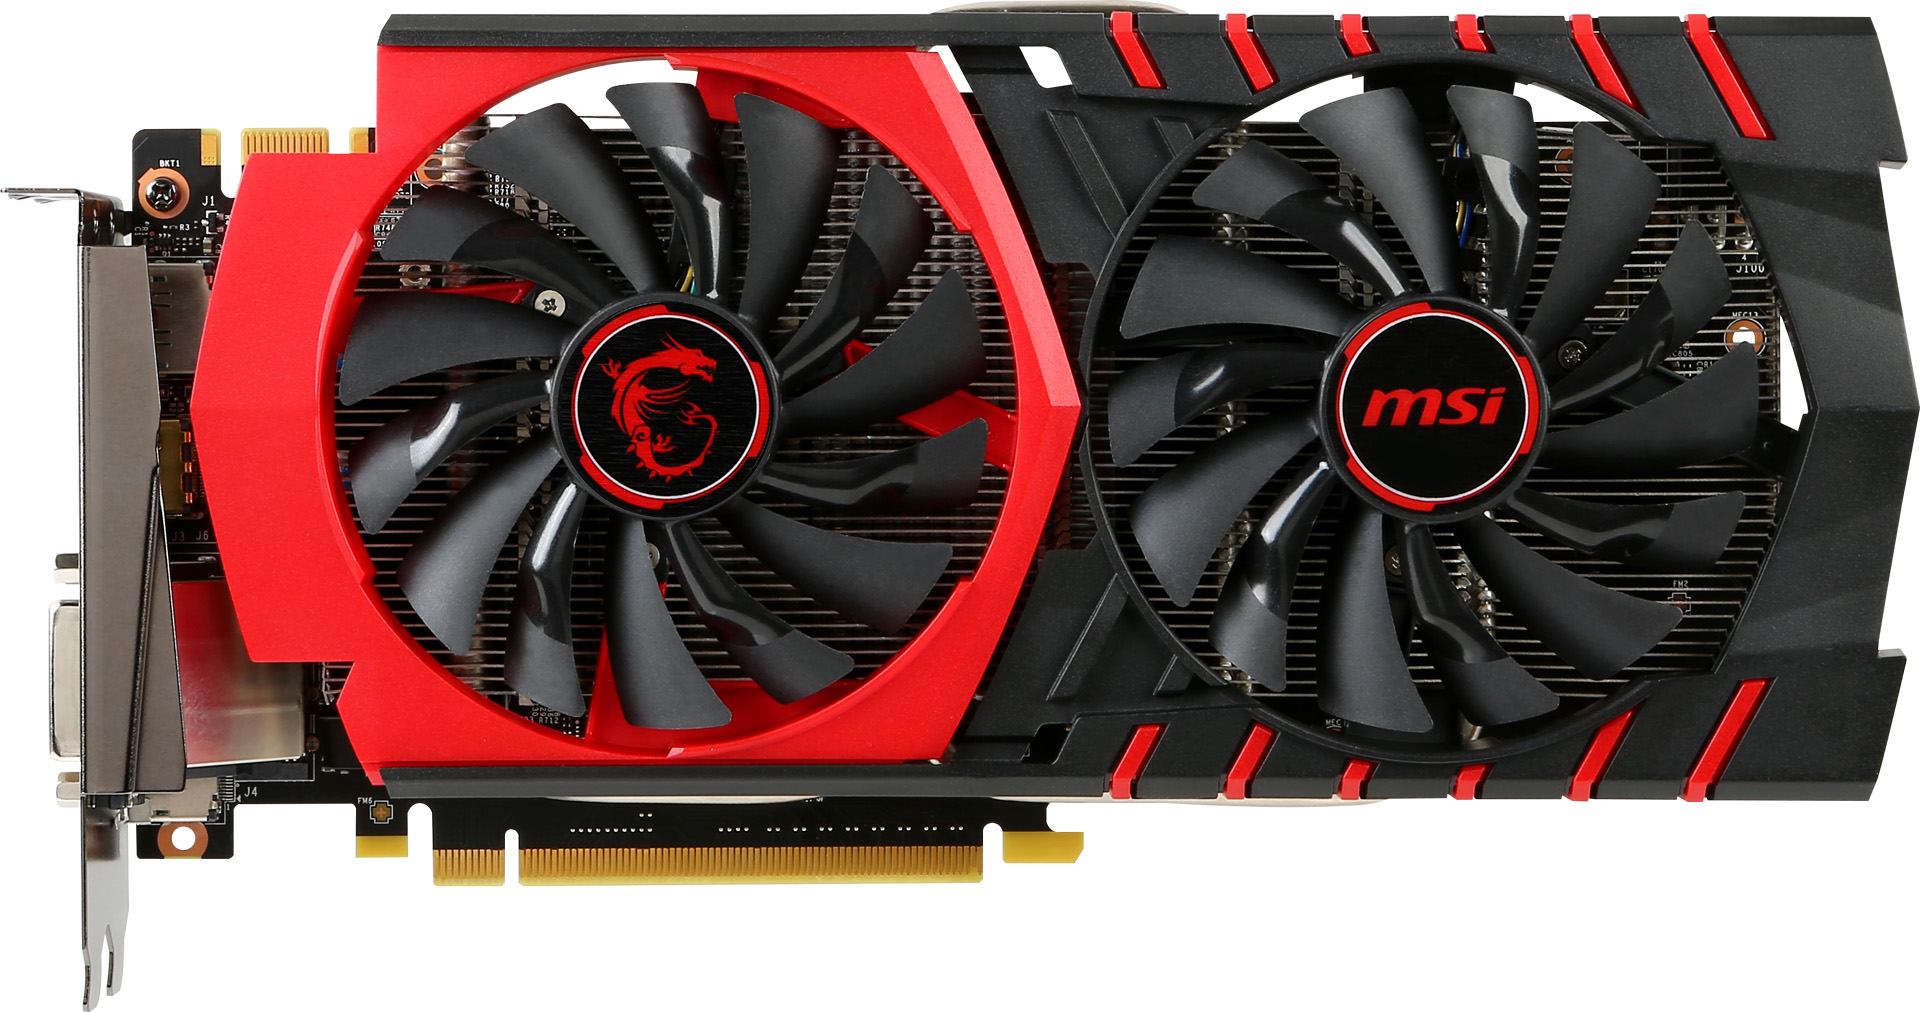 msi front